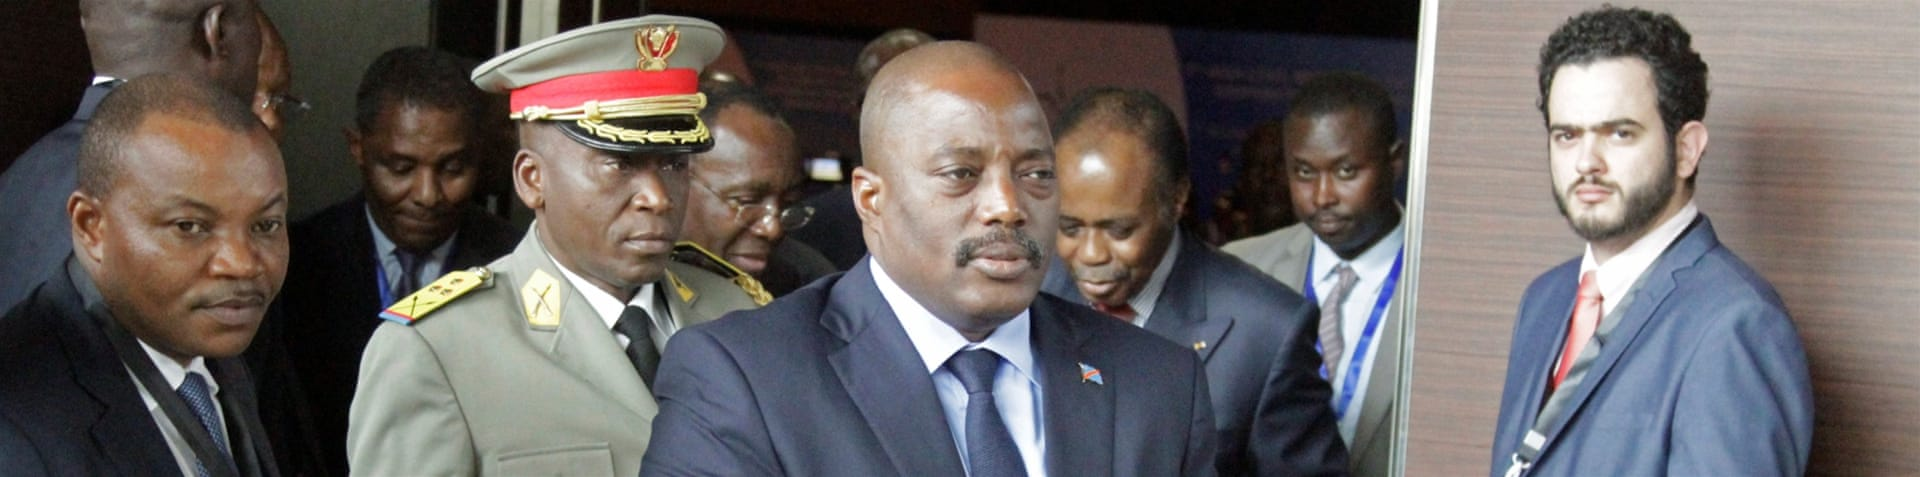 Kabila's refusal to step aside sparked demonstrations [File: Robert Carrubba/Reuters]